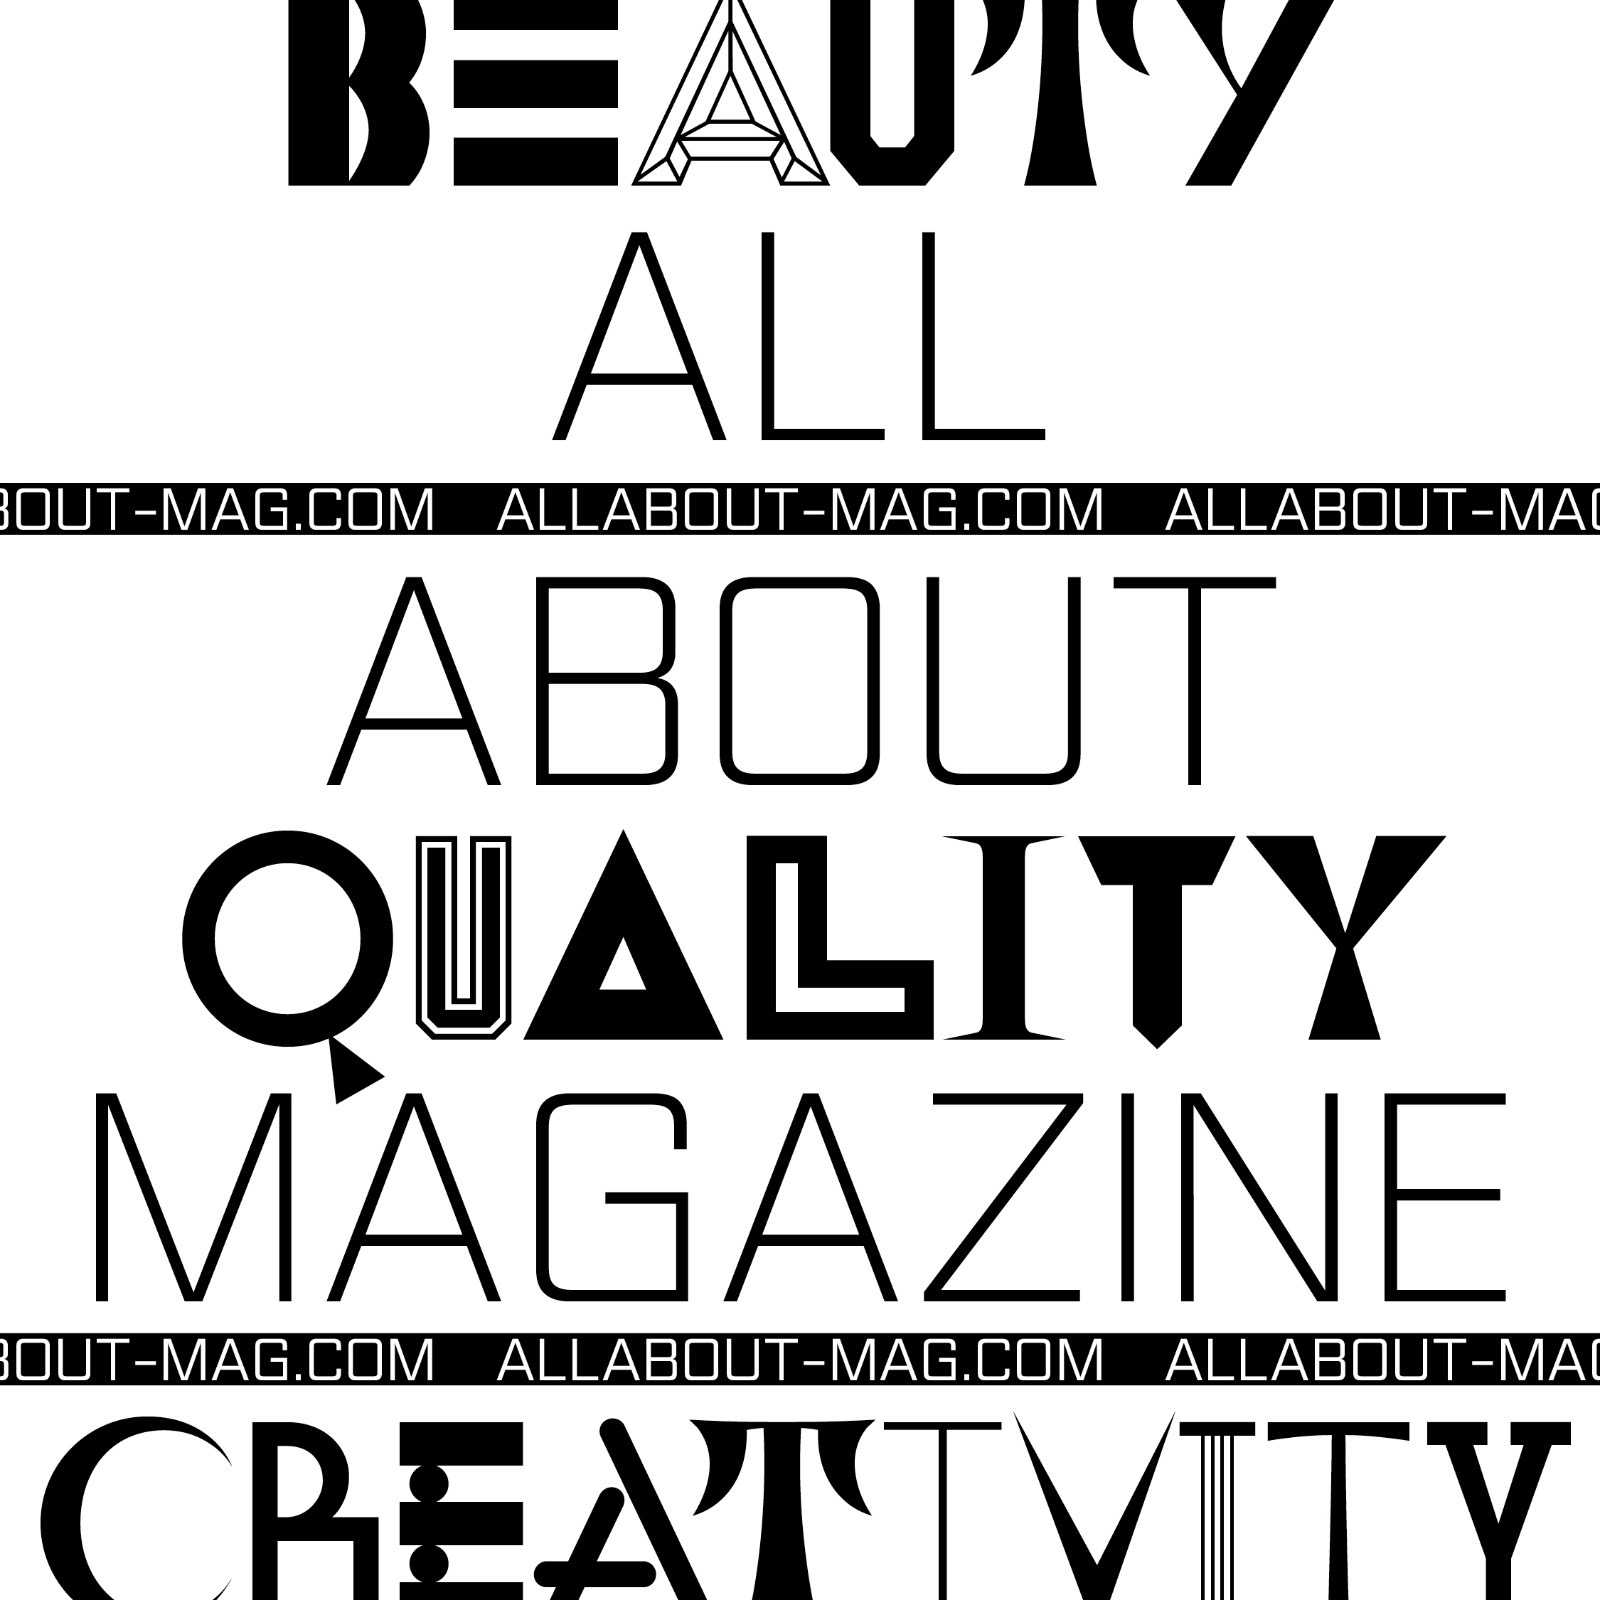 Values All About Magazine